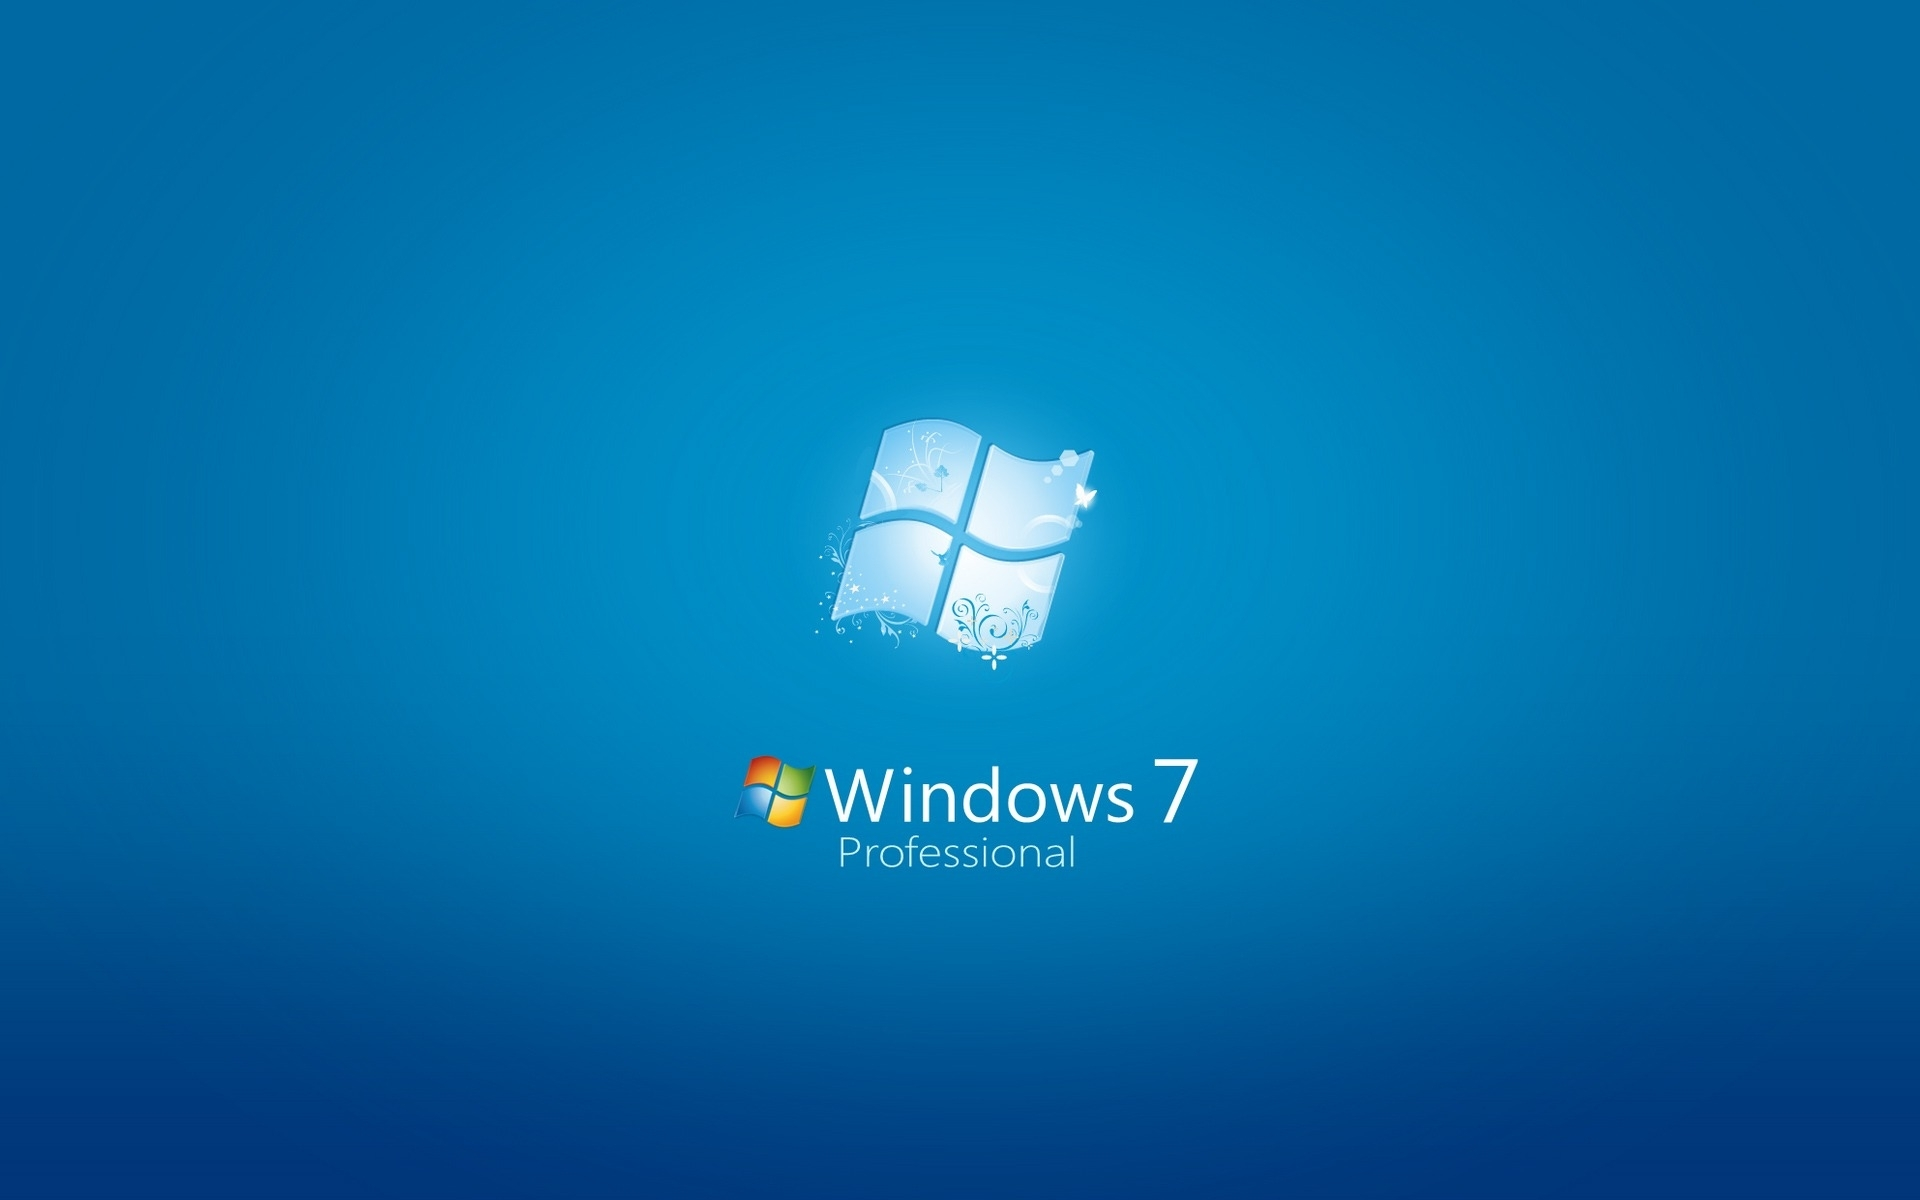 windows 7 professional wallpapers | hd wallpapers | id #8923